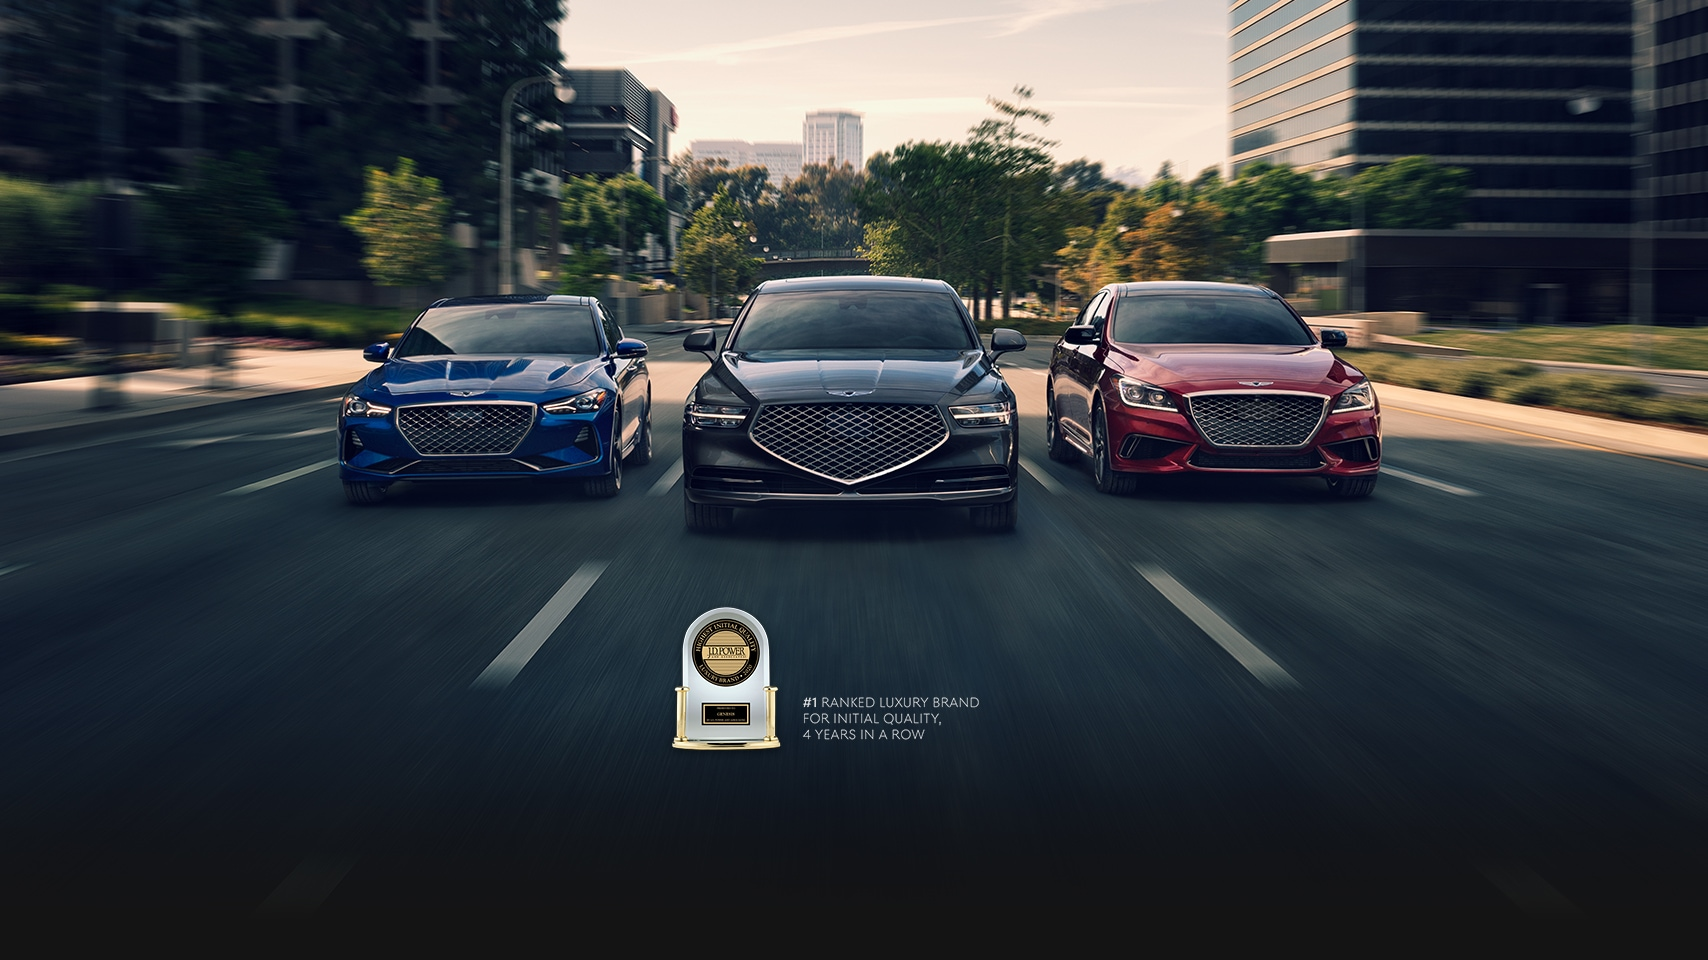 Pack shot of 2020 Genesis G70, G90, and G80 with J.D. Power trophy.